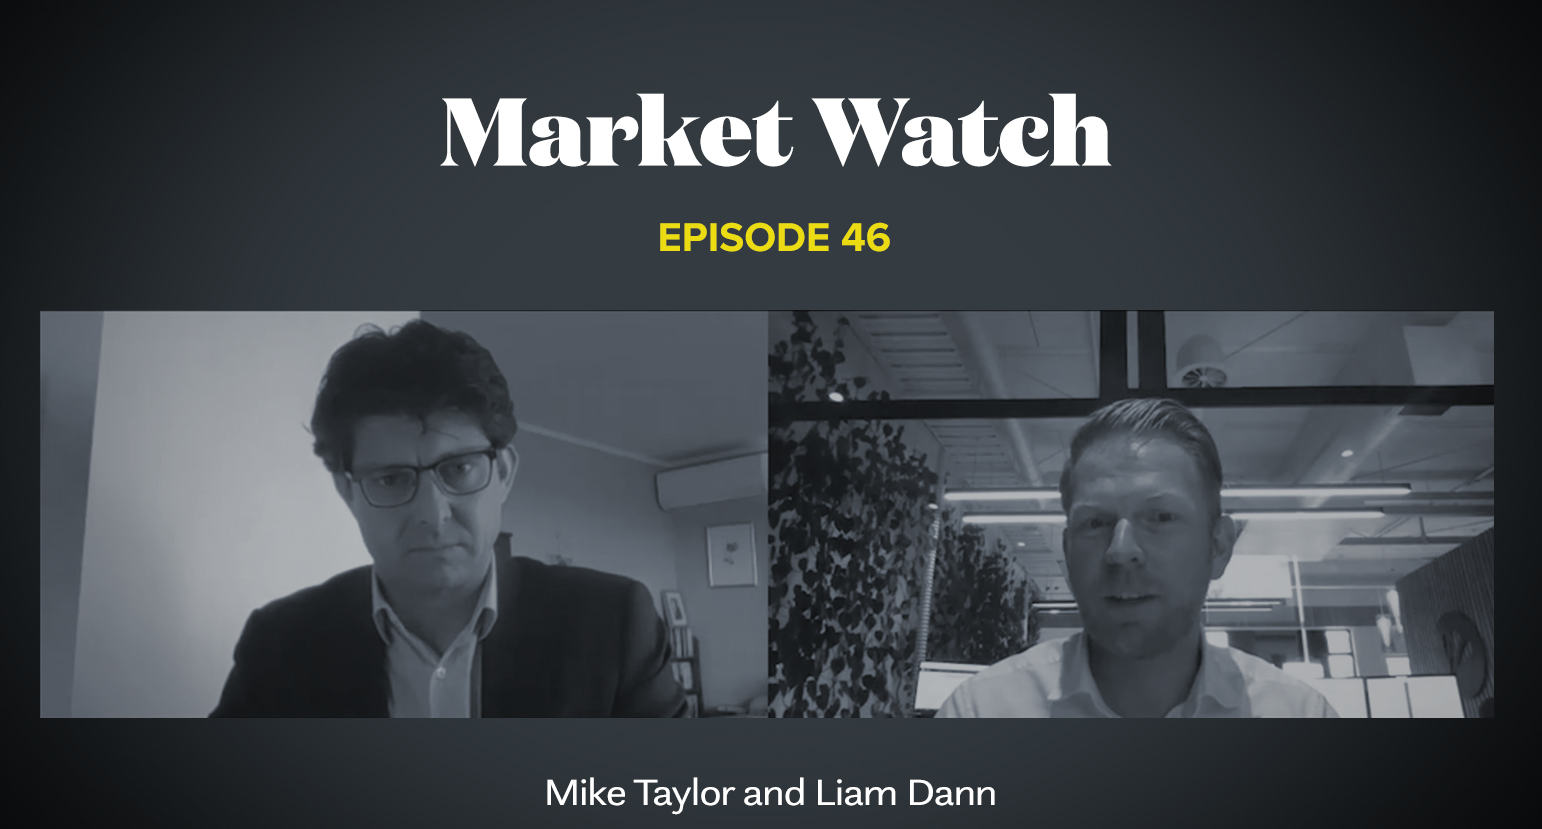 Market-Watch-Video-and-EP46_Digital2.jpg